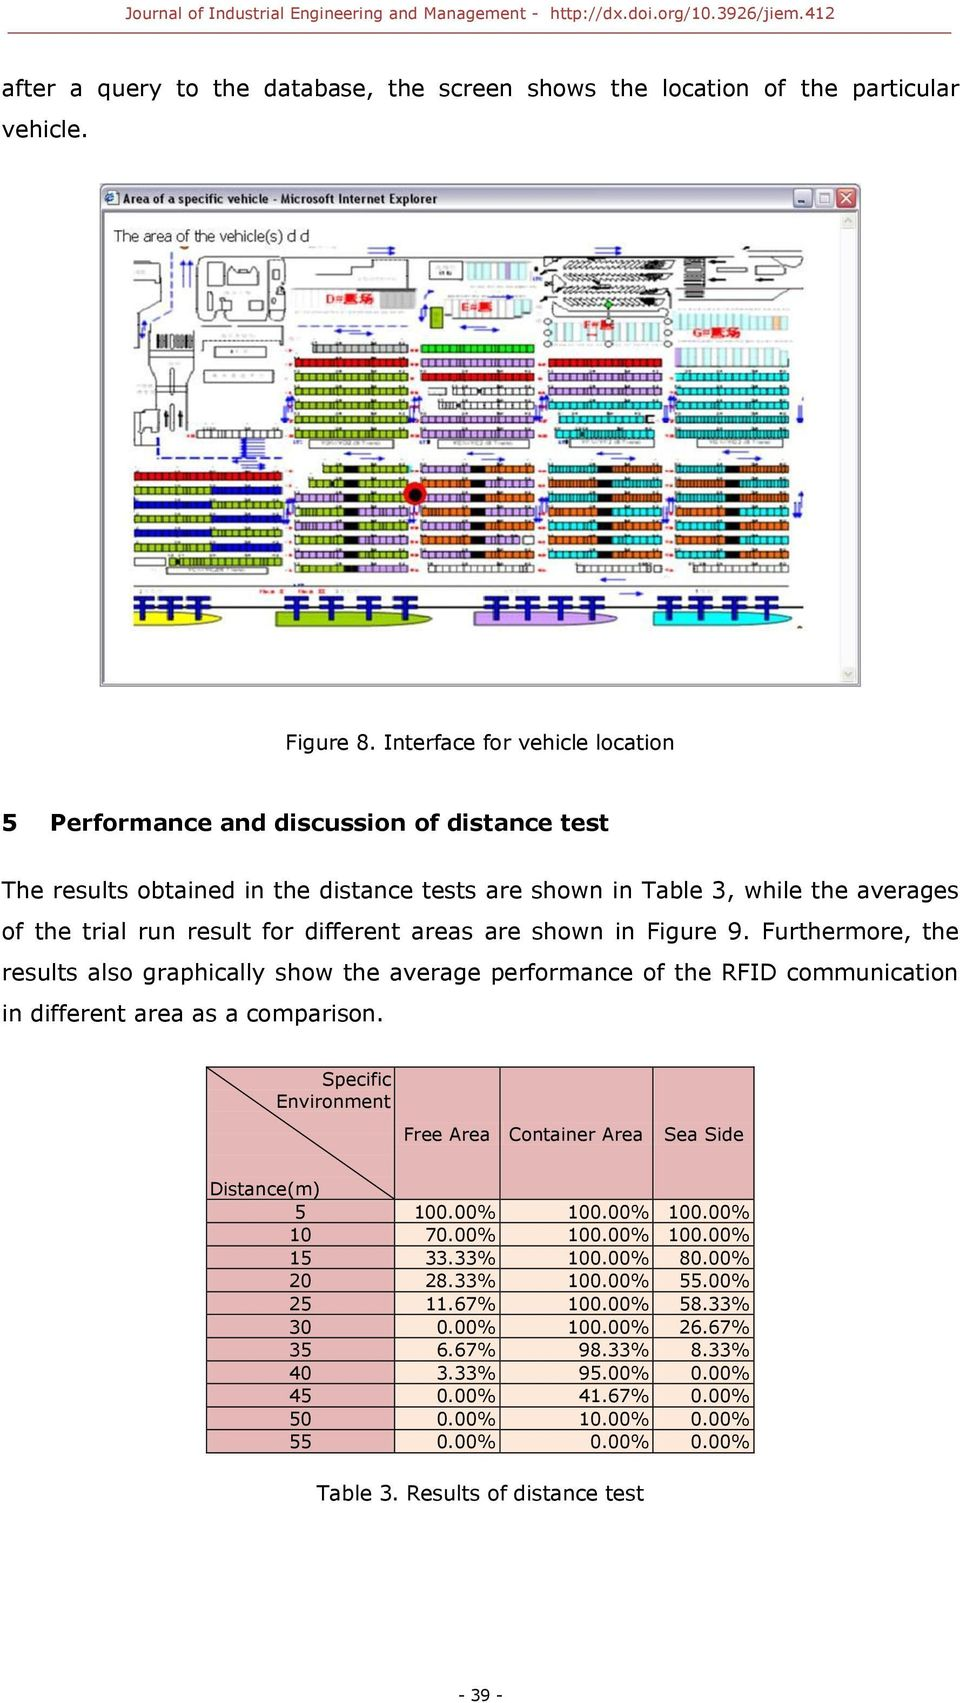 areas are shown in Figure 9. Furthermore, the results also graphically show the average performance of the RFID communication in different area as a comparison.